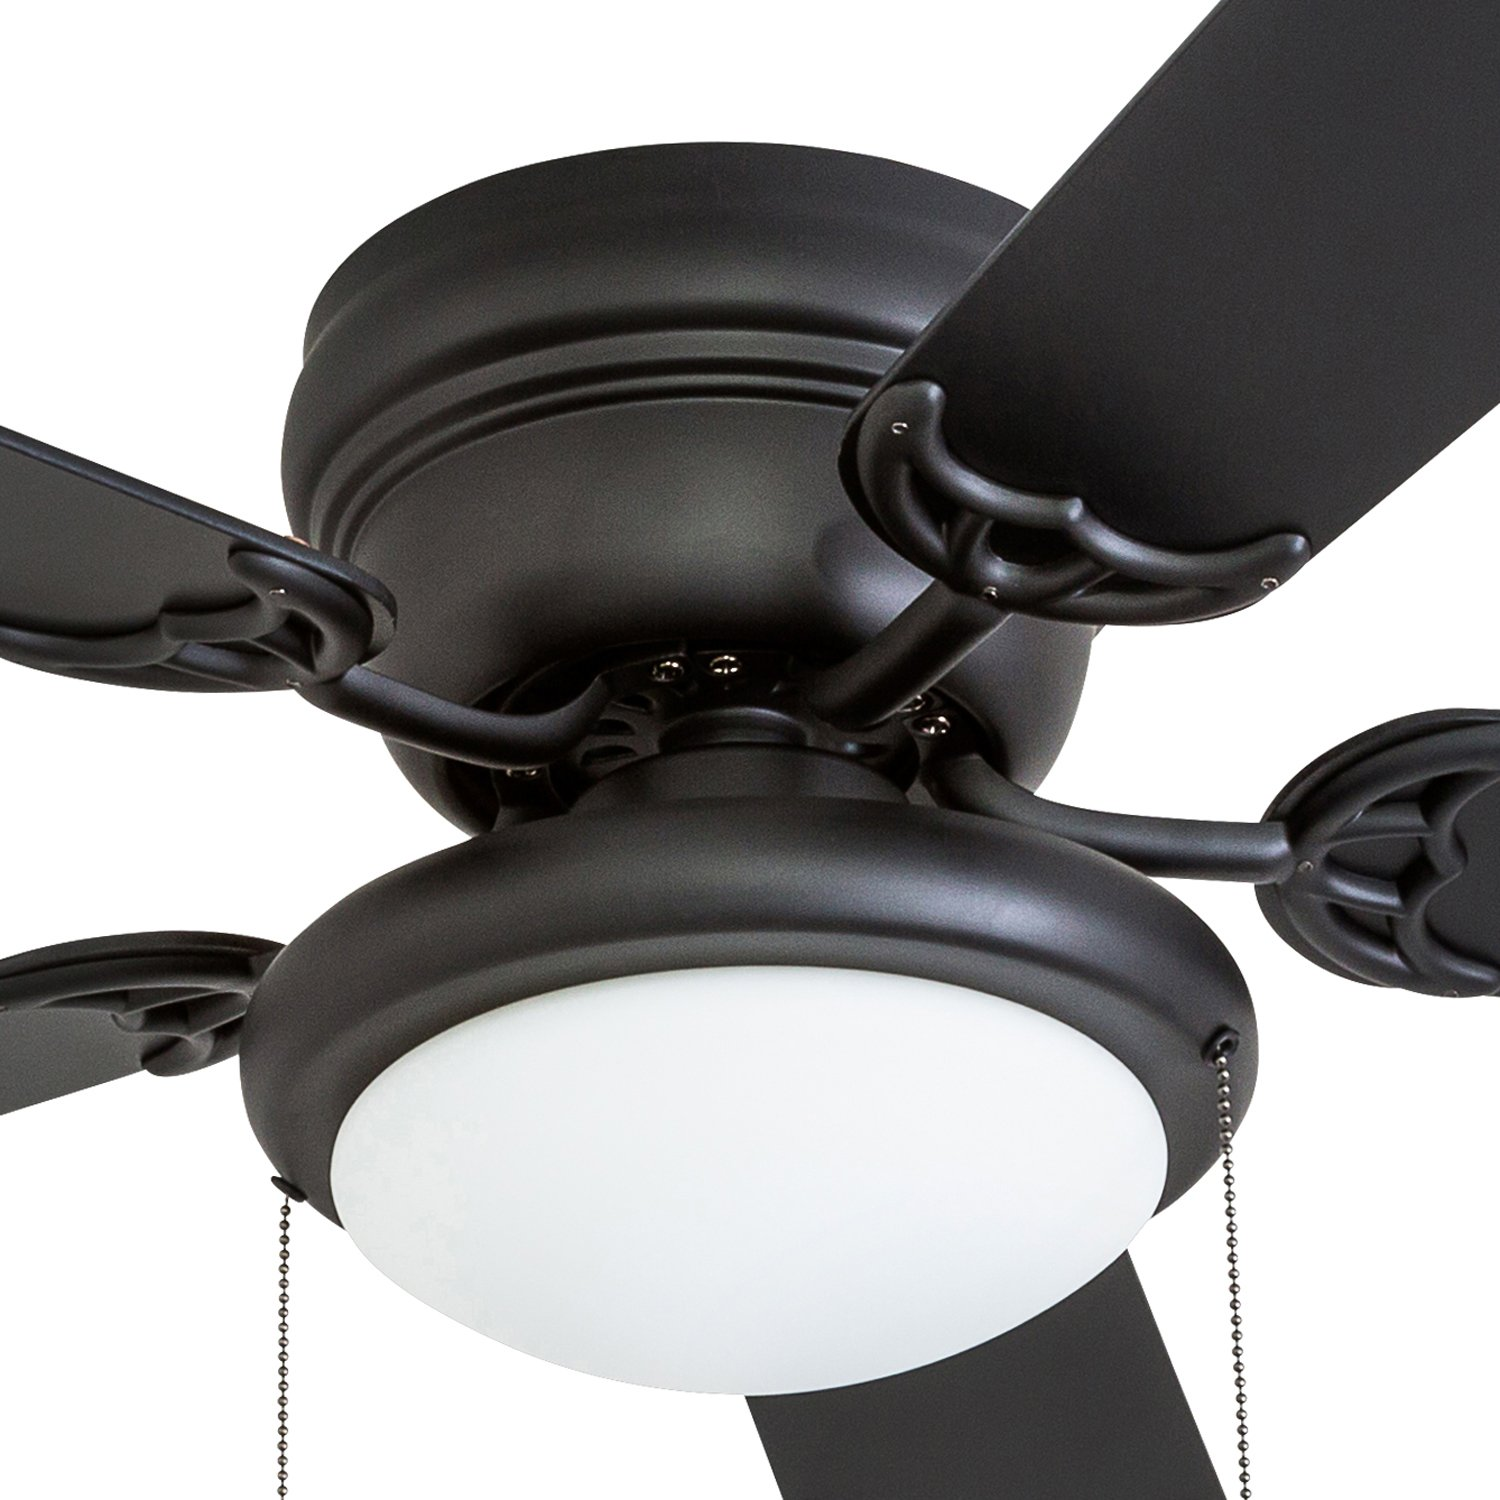 Portage Bay 50251 Hugger 52'' Matte Black West Hill Ceiling Fan with Bowl Light Kit by Portage Bay (Image #8)